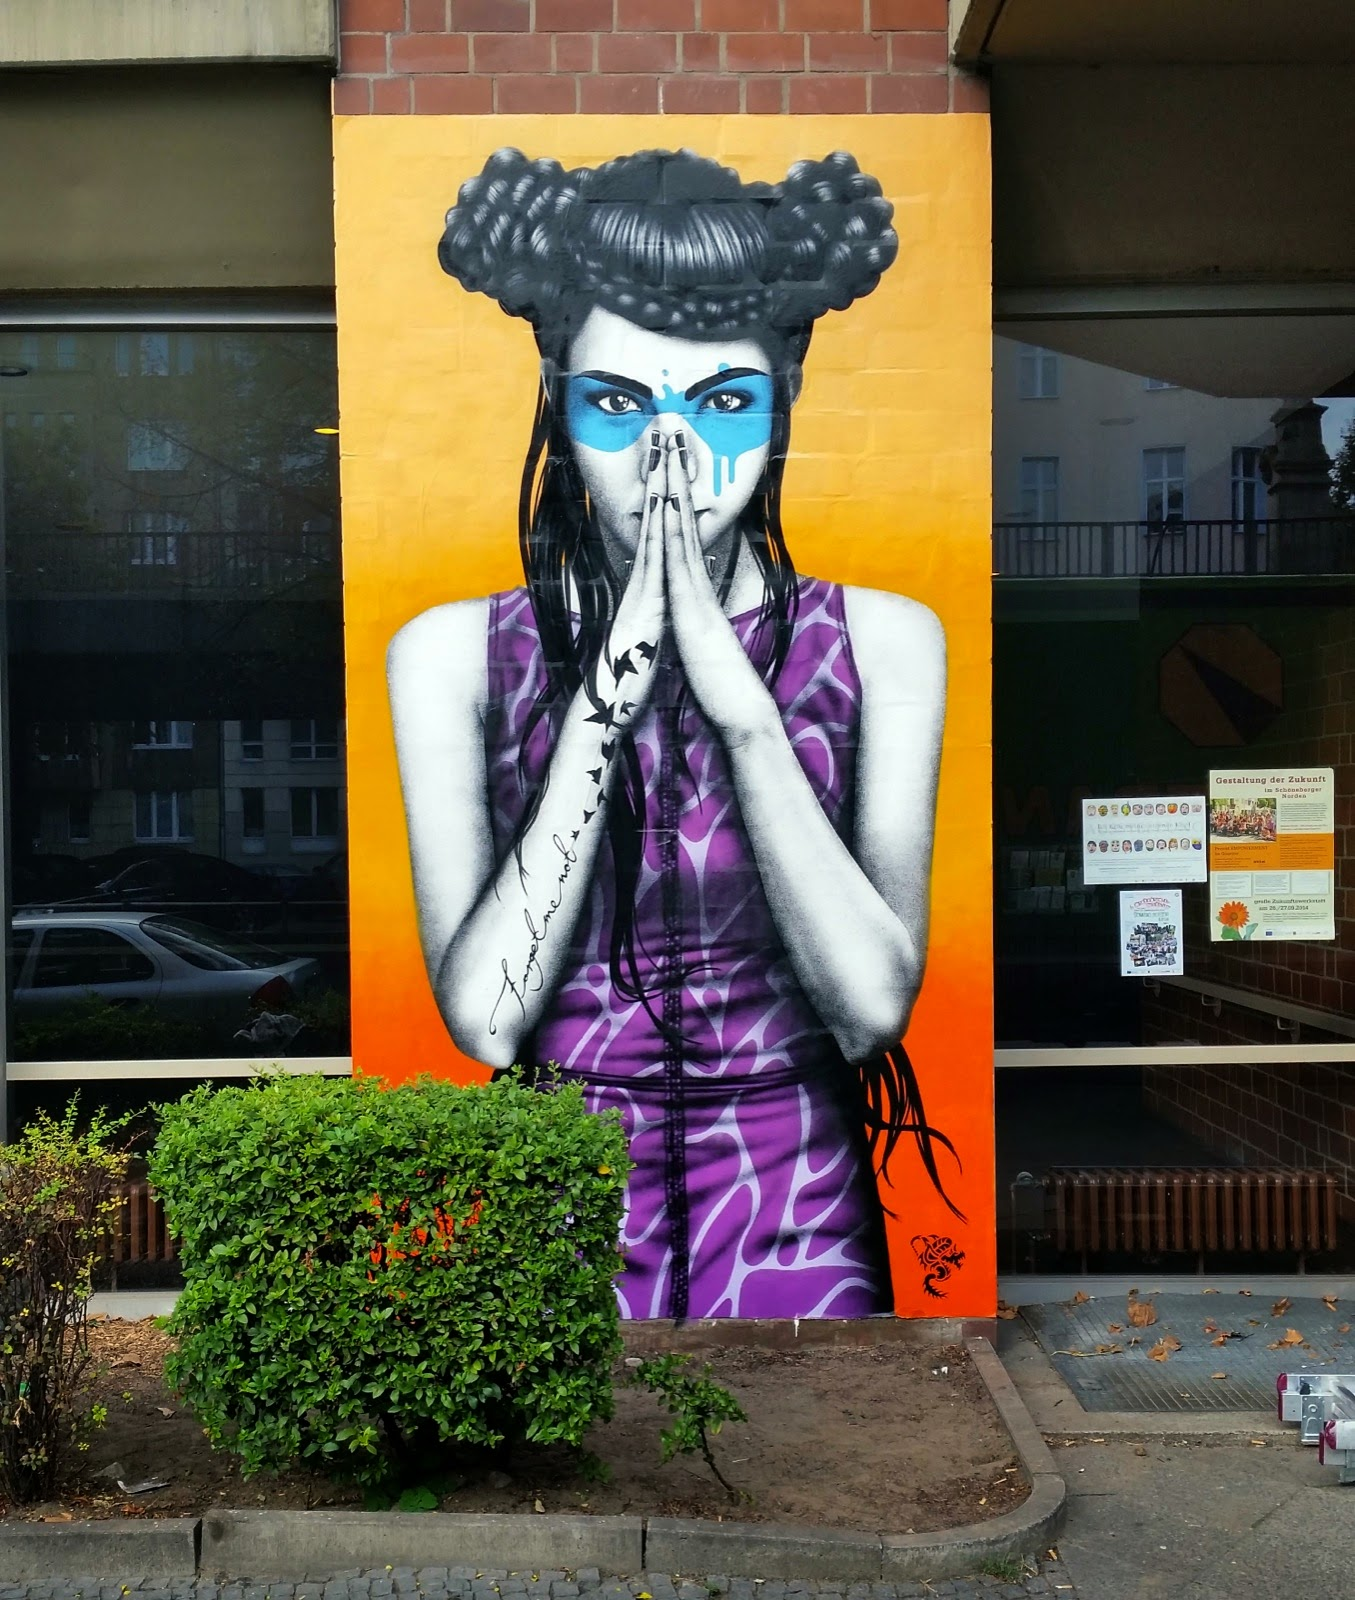 Fin DAC recently stopped by Berlin in Germany where he was invited by Urban Nation and London Graffiti to paint a new piece for the One Wall project.